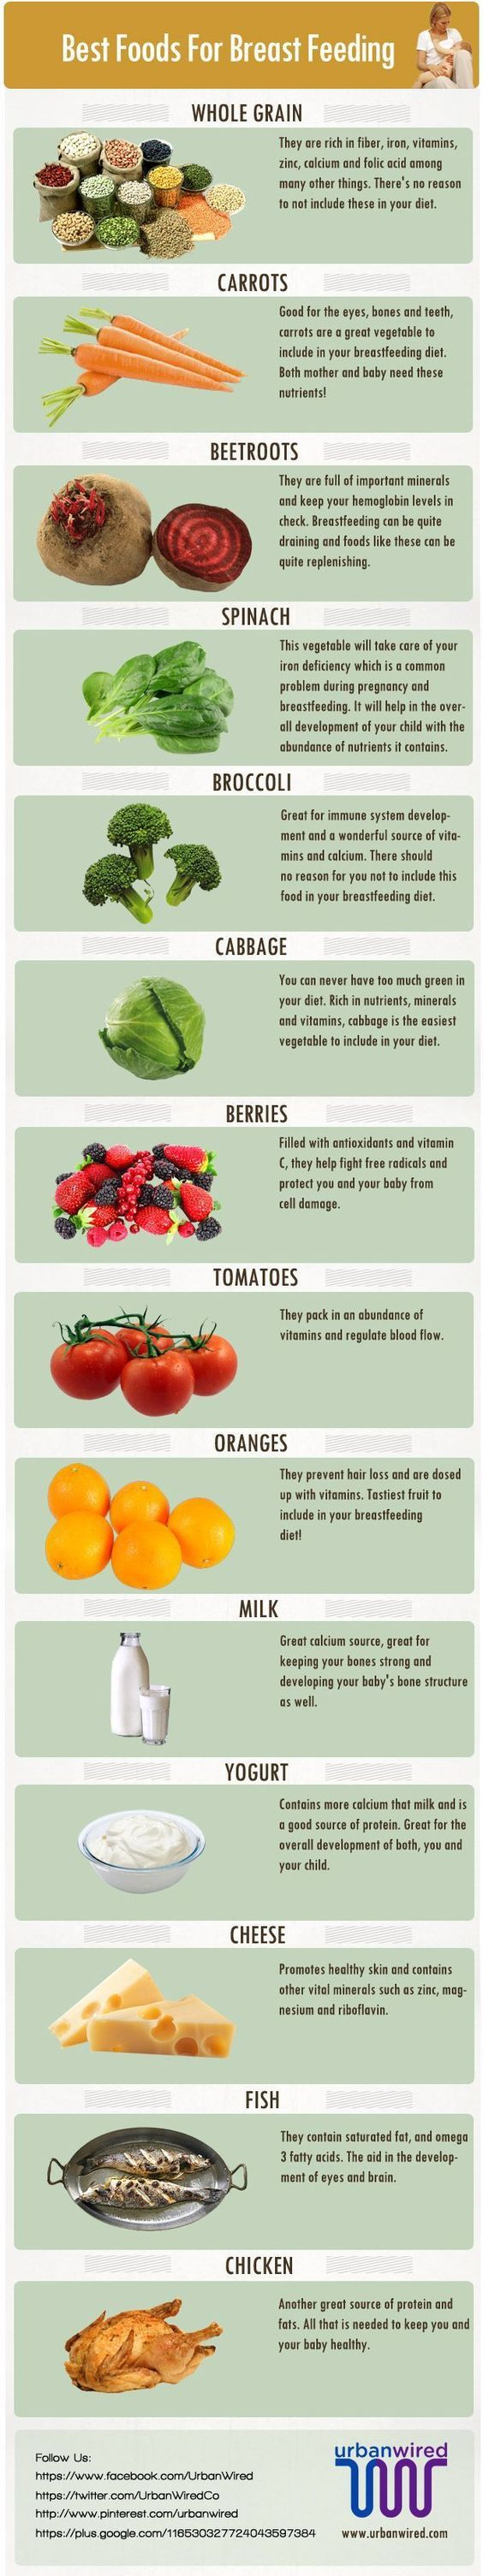 best foods for breast feeding